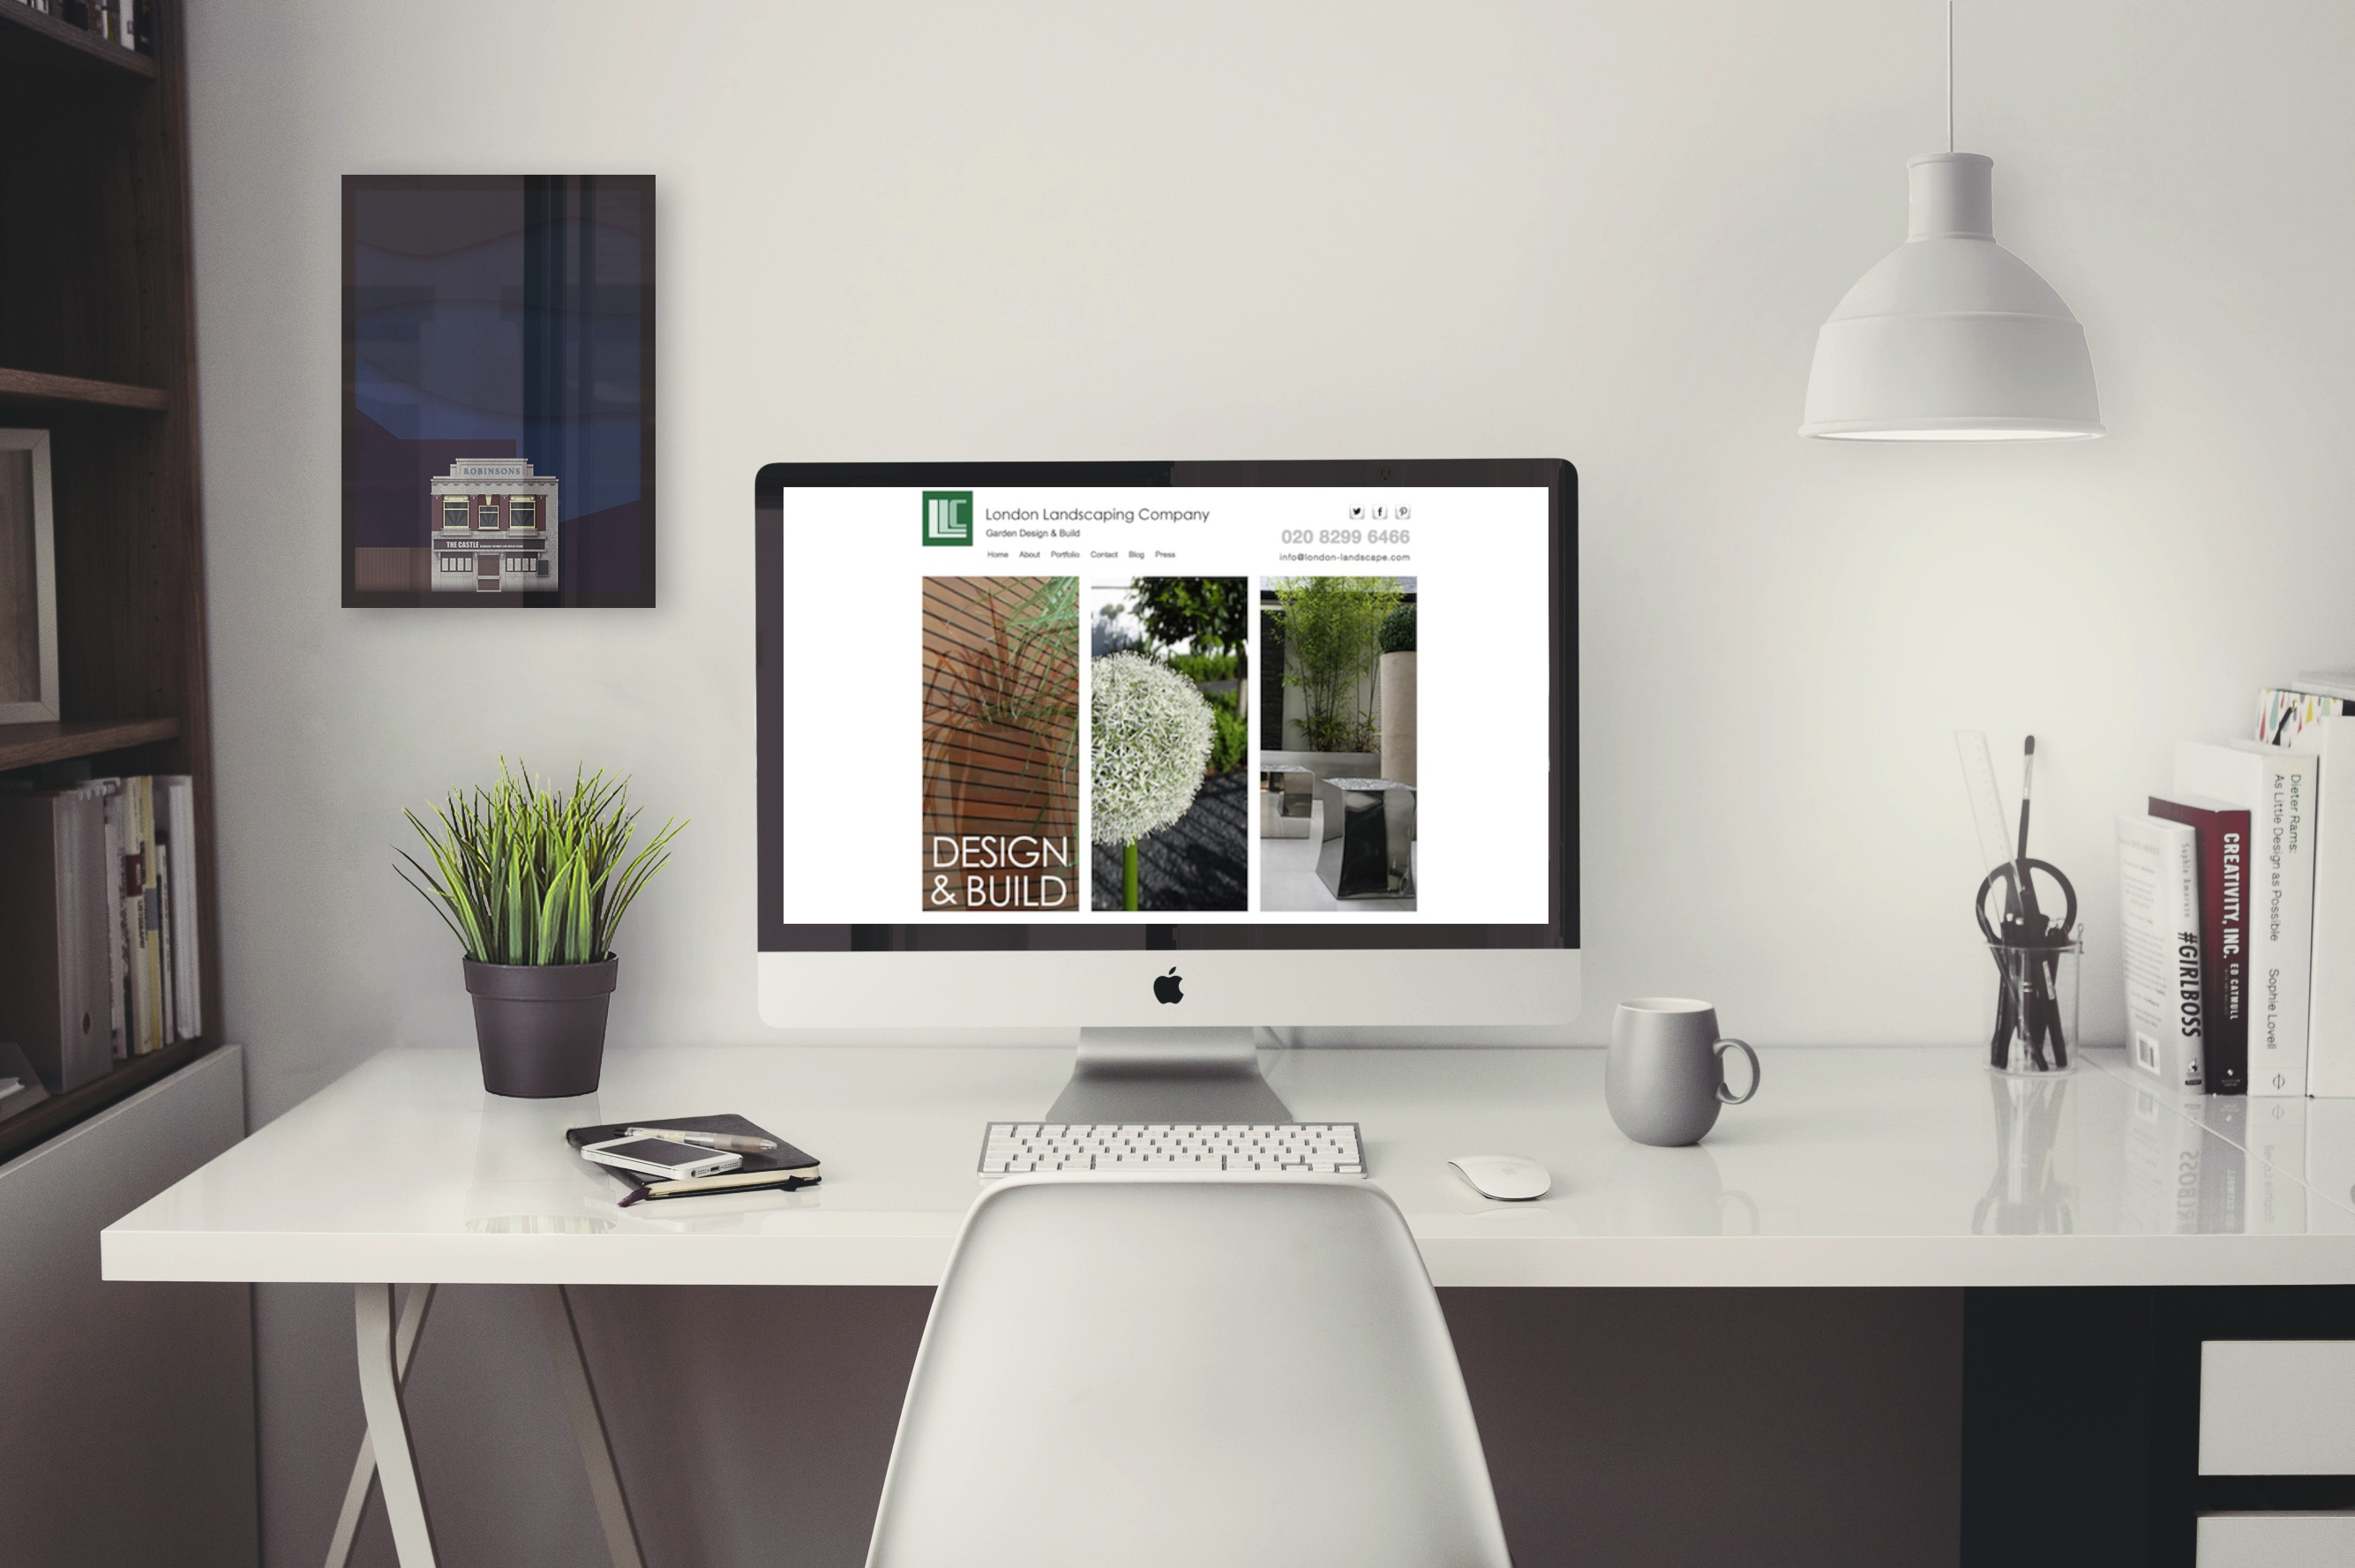 London Landscaping Company - Get To Page One Ltd